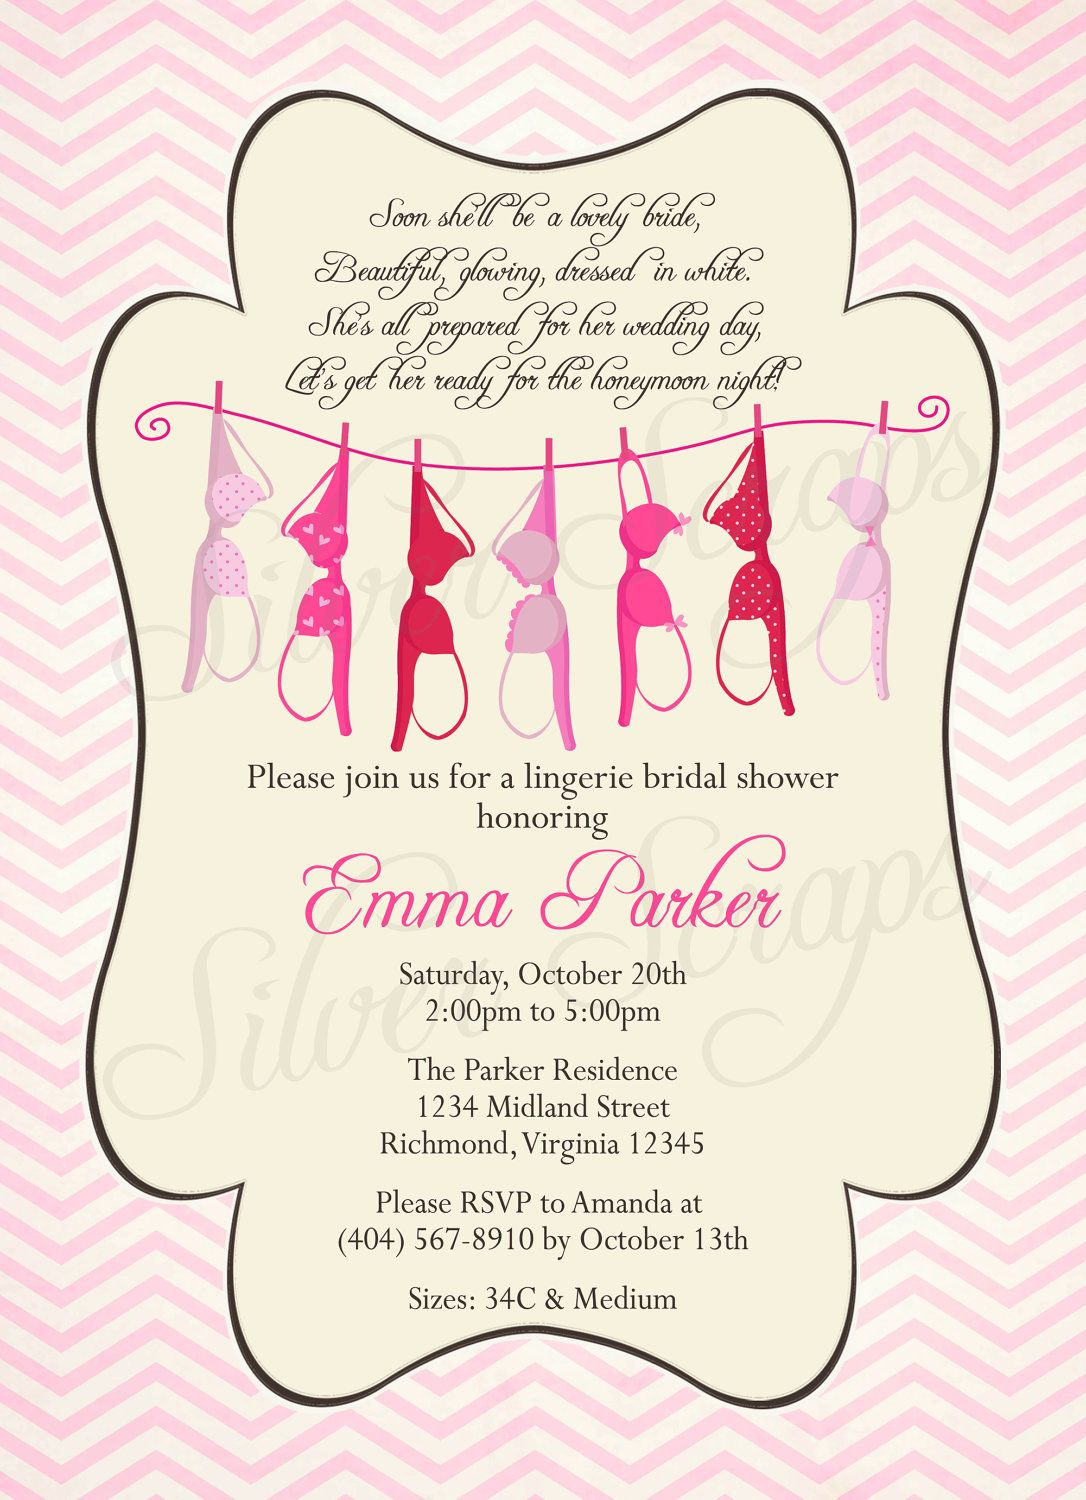 Lingerie Party Invites wedding card pictures – Lingerie Party Invite